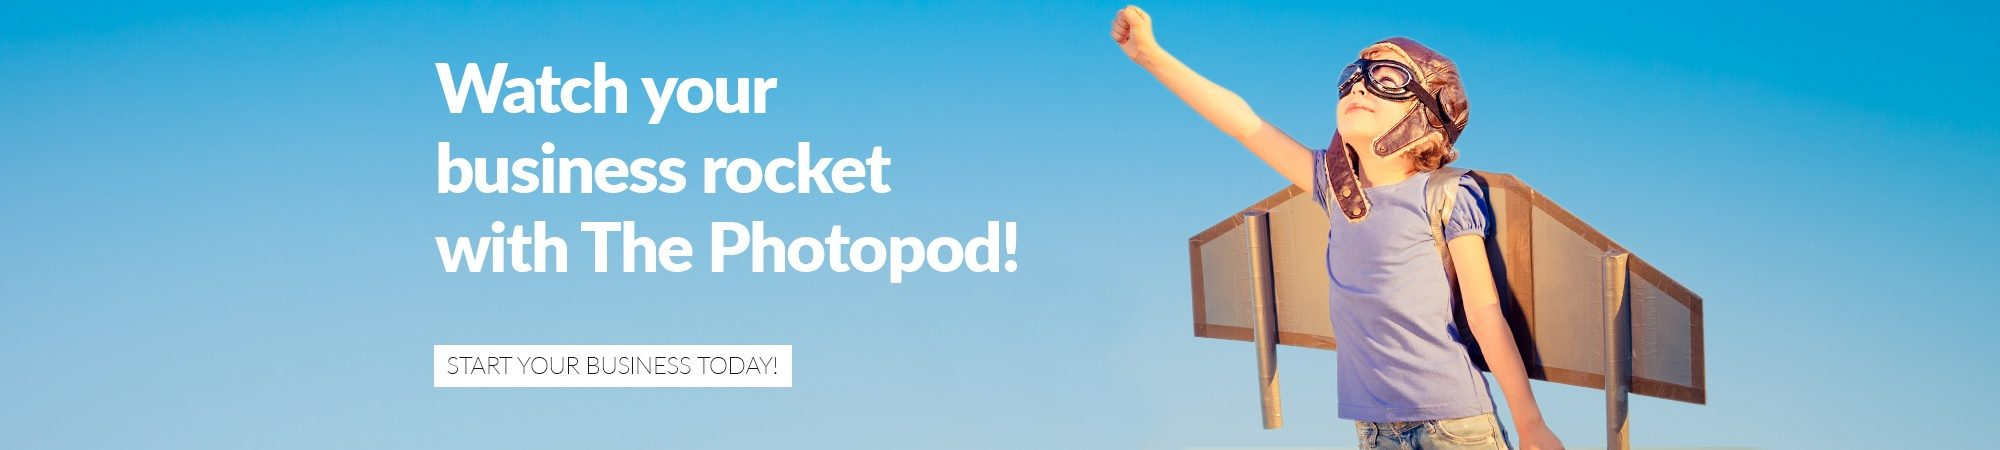 Photo booth business banner image of boy and rocket